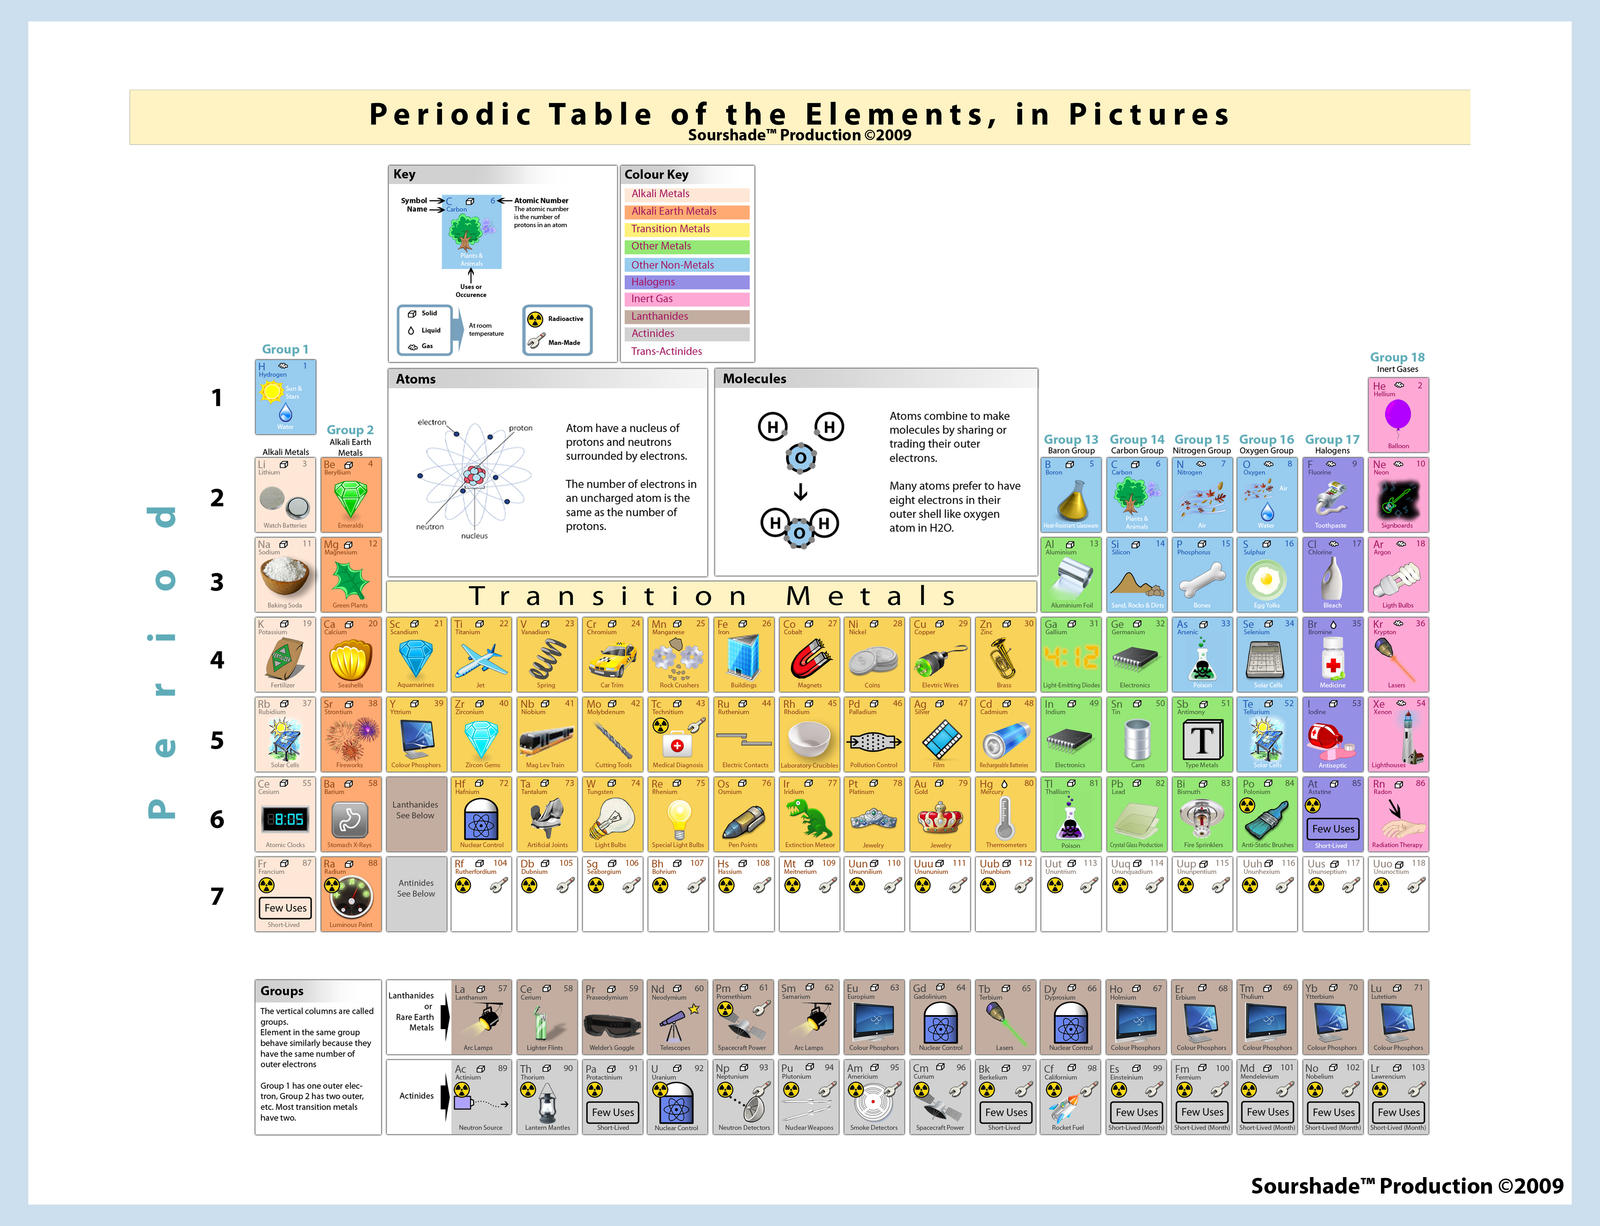 Periodic table of the elements by sourshade on deviantart periodic table of the elements by sourshade urtaz Image collections